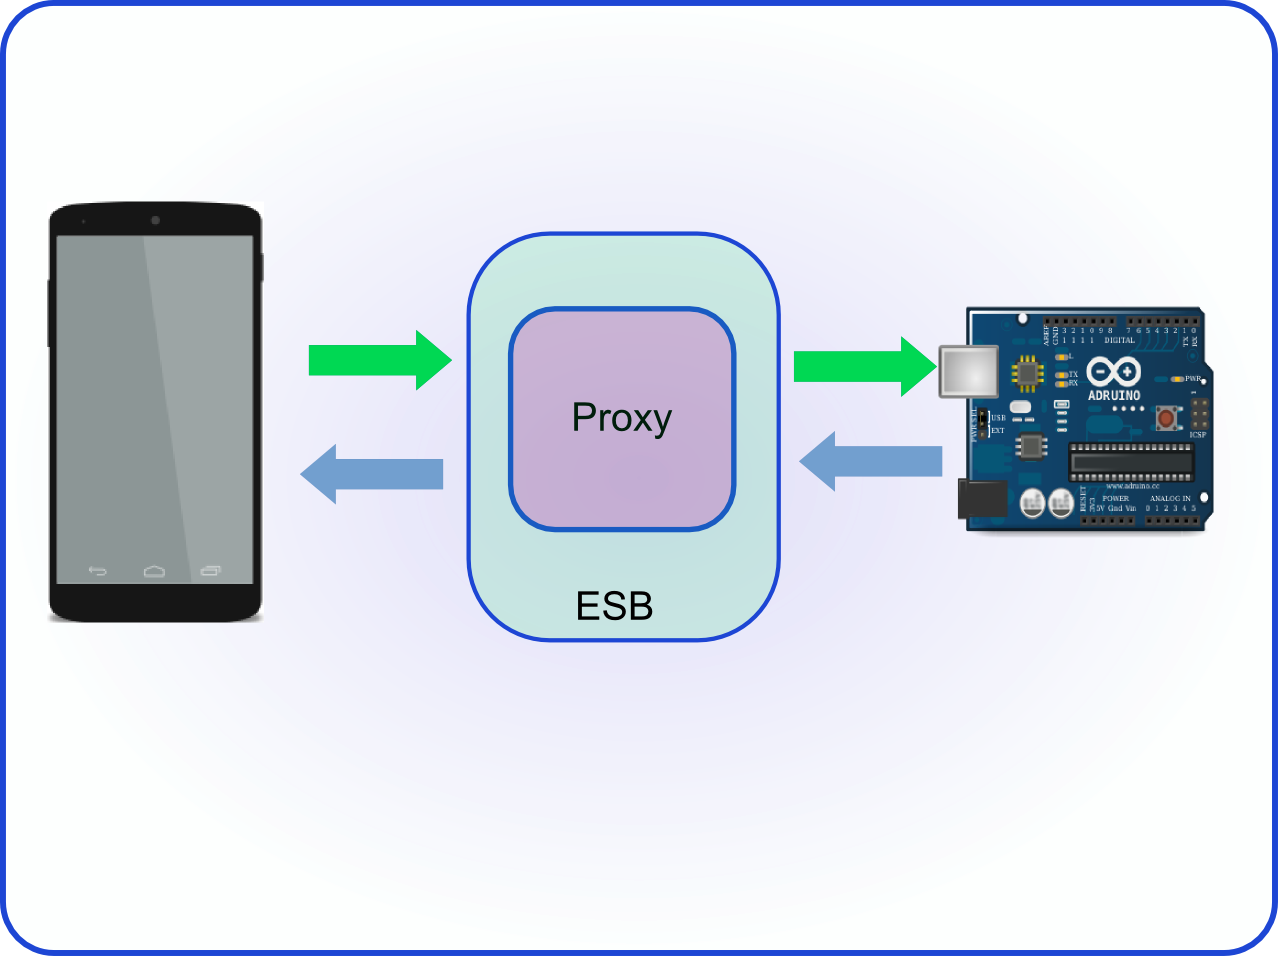 Arduino Android Esb Dzone Iot Now That You Understand How To Talk An With App In This First Example The Smartphone Connect And Requests Current Temperature General Context Is Shown Below